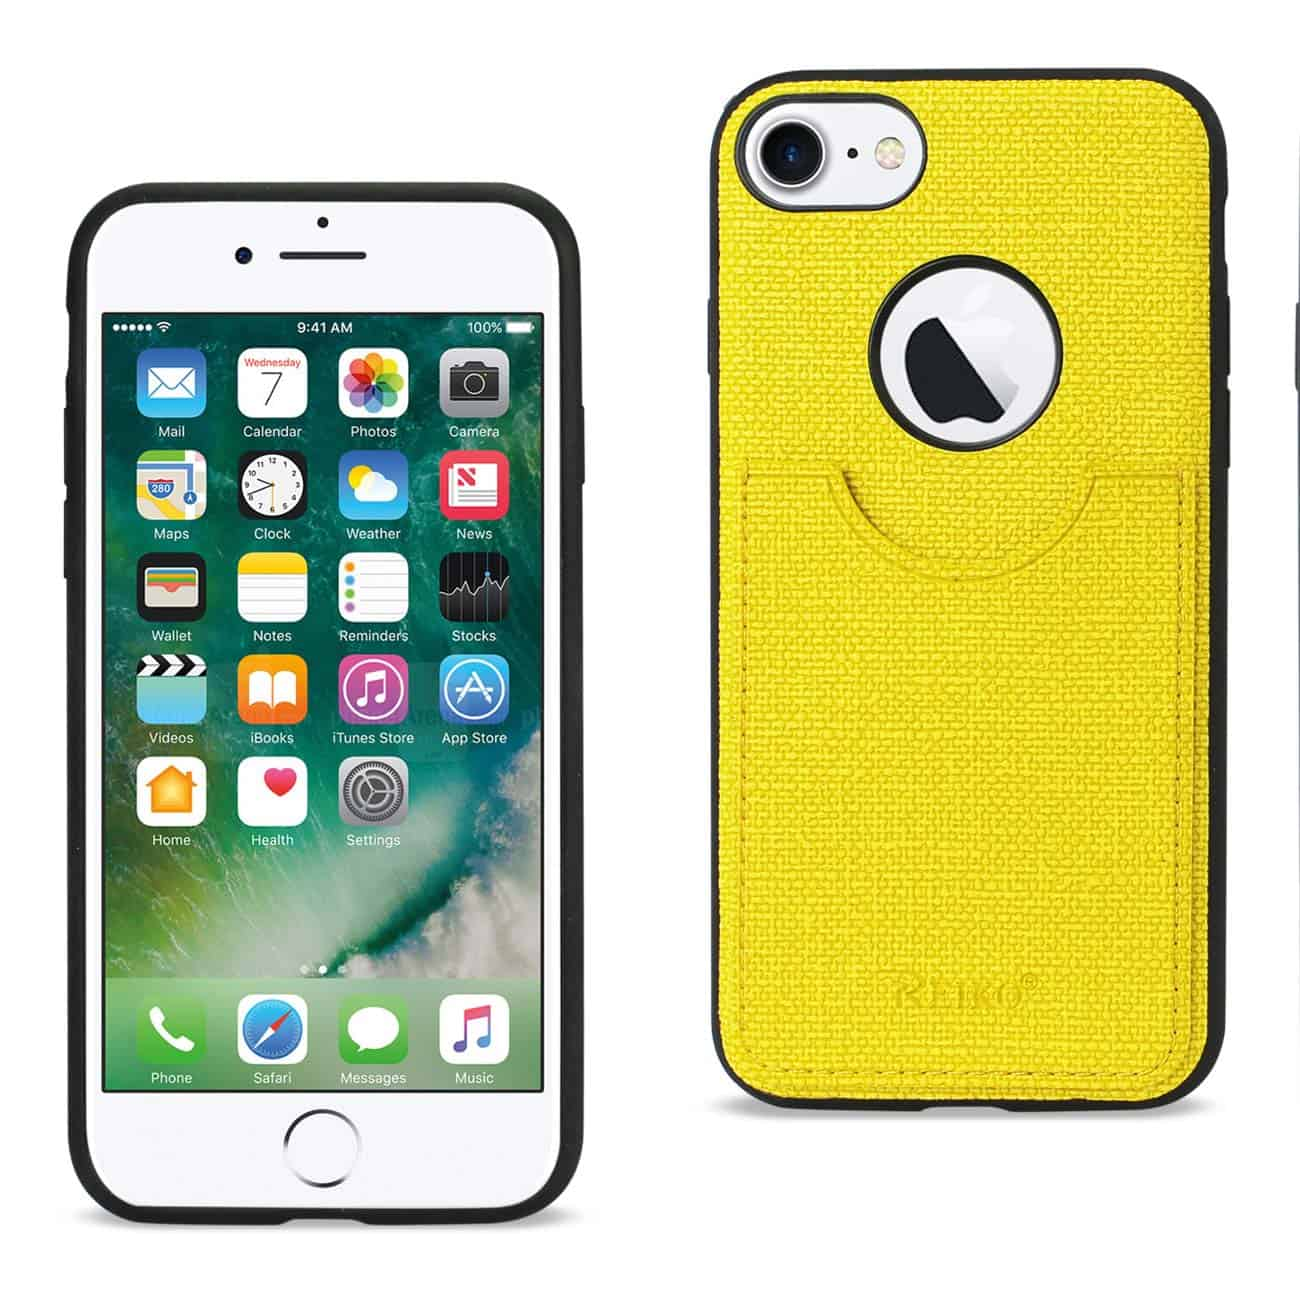 IPHONE 7 ANTI-SLIP TEXTURE PROTECTOR COVER WITH CARD SLOT IN YELLOW